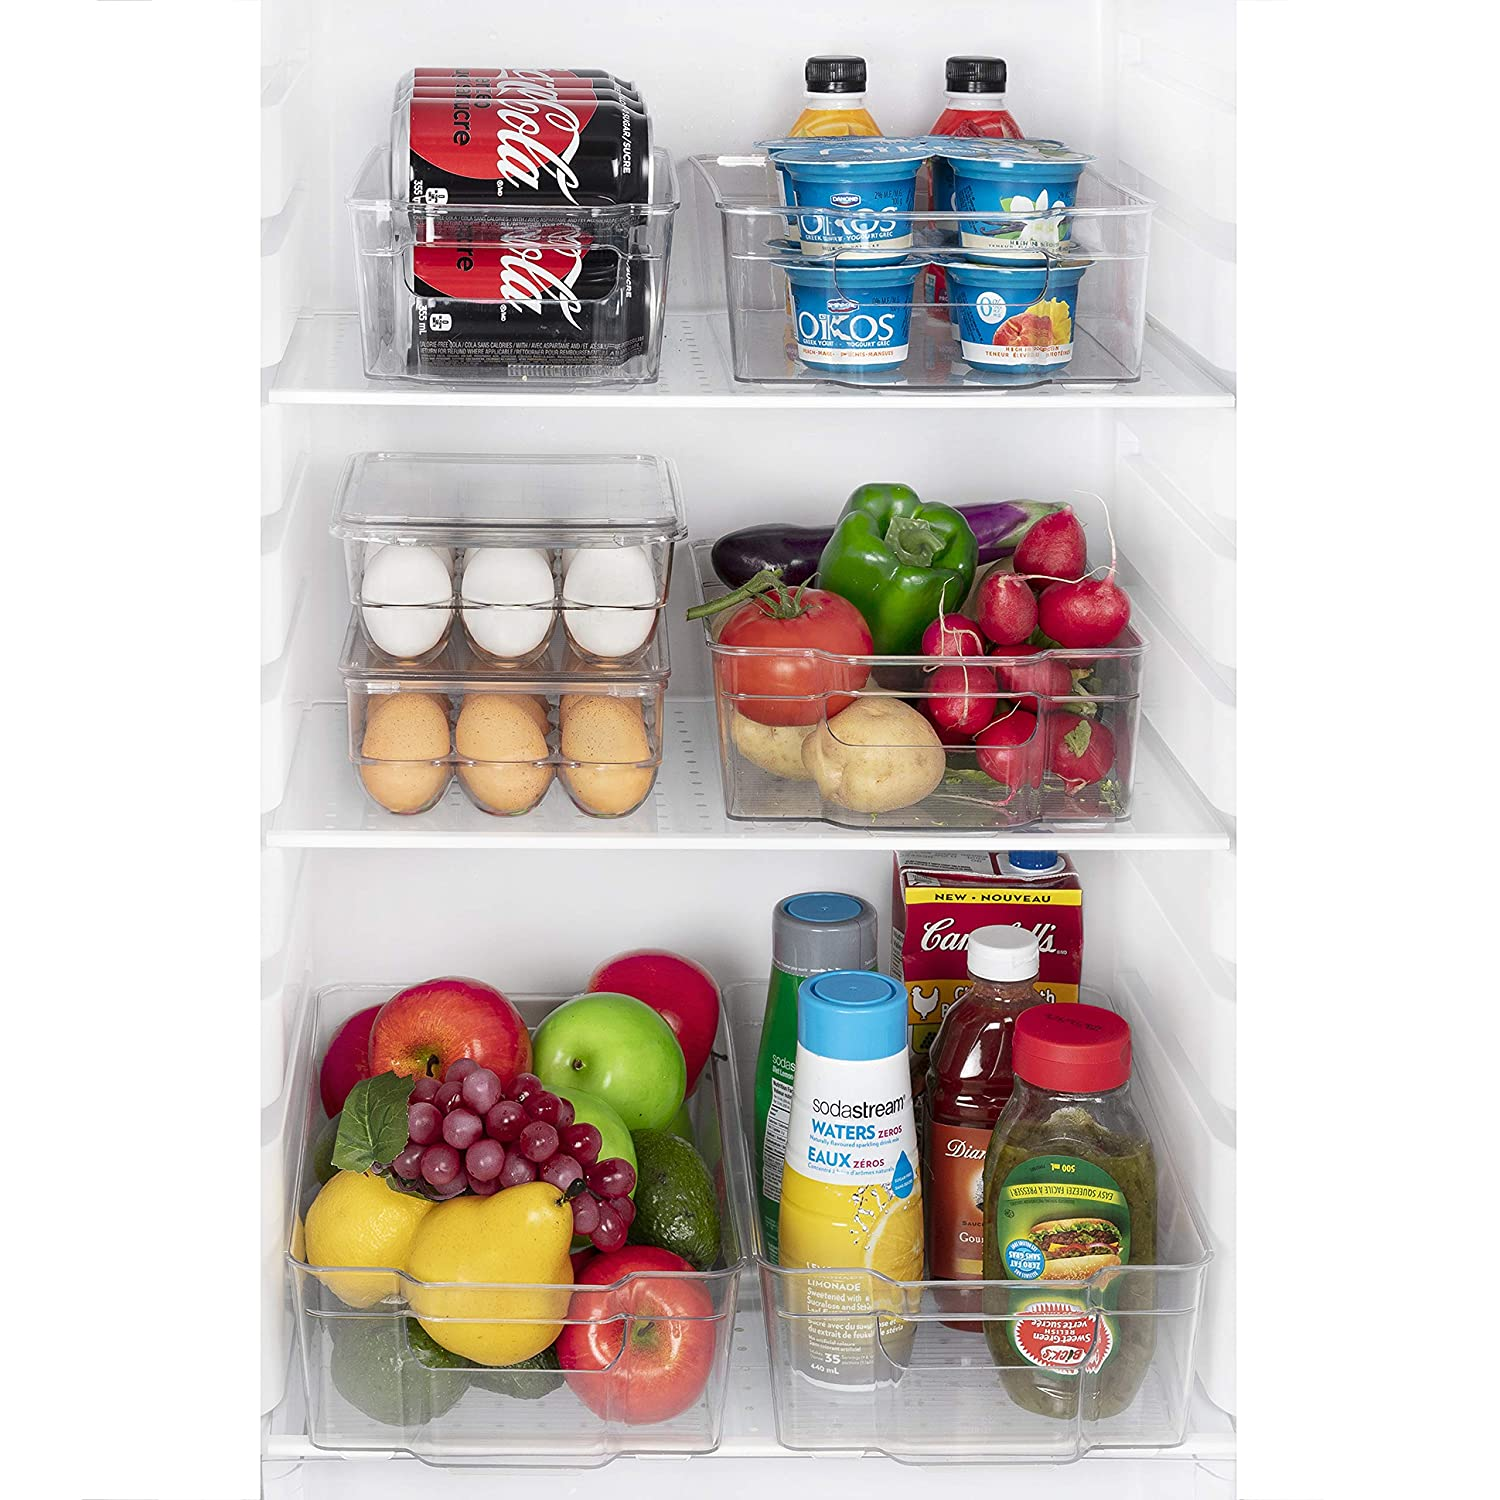 Jina Home Fridge Storage Bins - Set of 6 Kitchen Storage Bins | Stackable Refrigerator Organizers | BPA-Free Drawer Organizers for Fridge Bathroom and Pantry